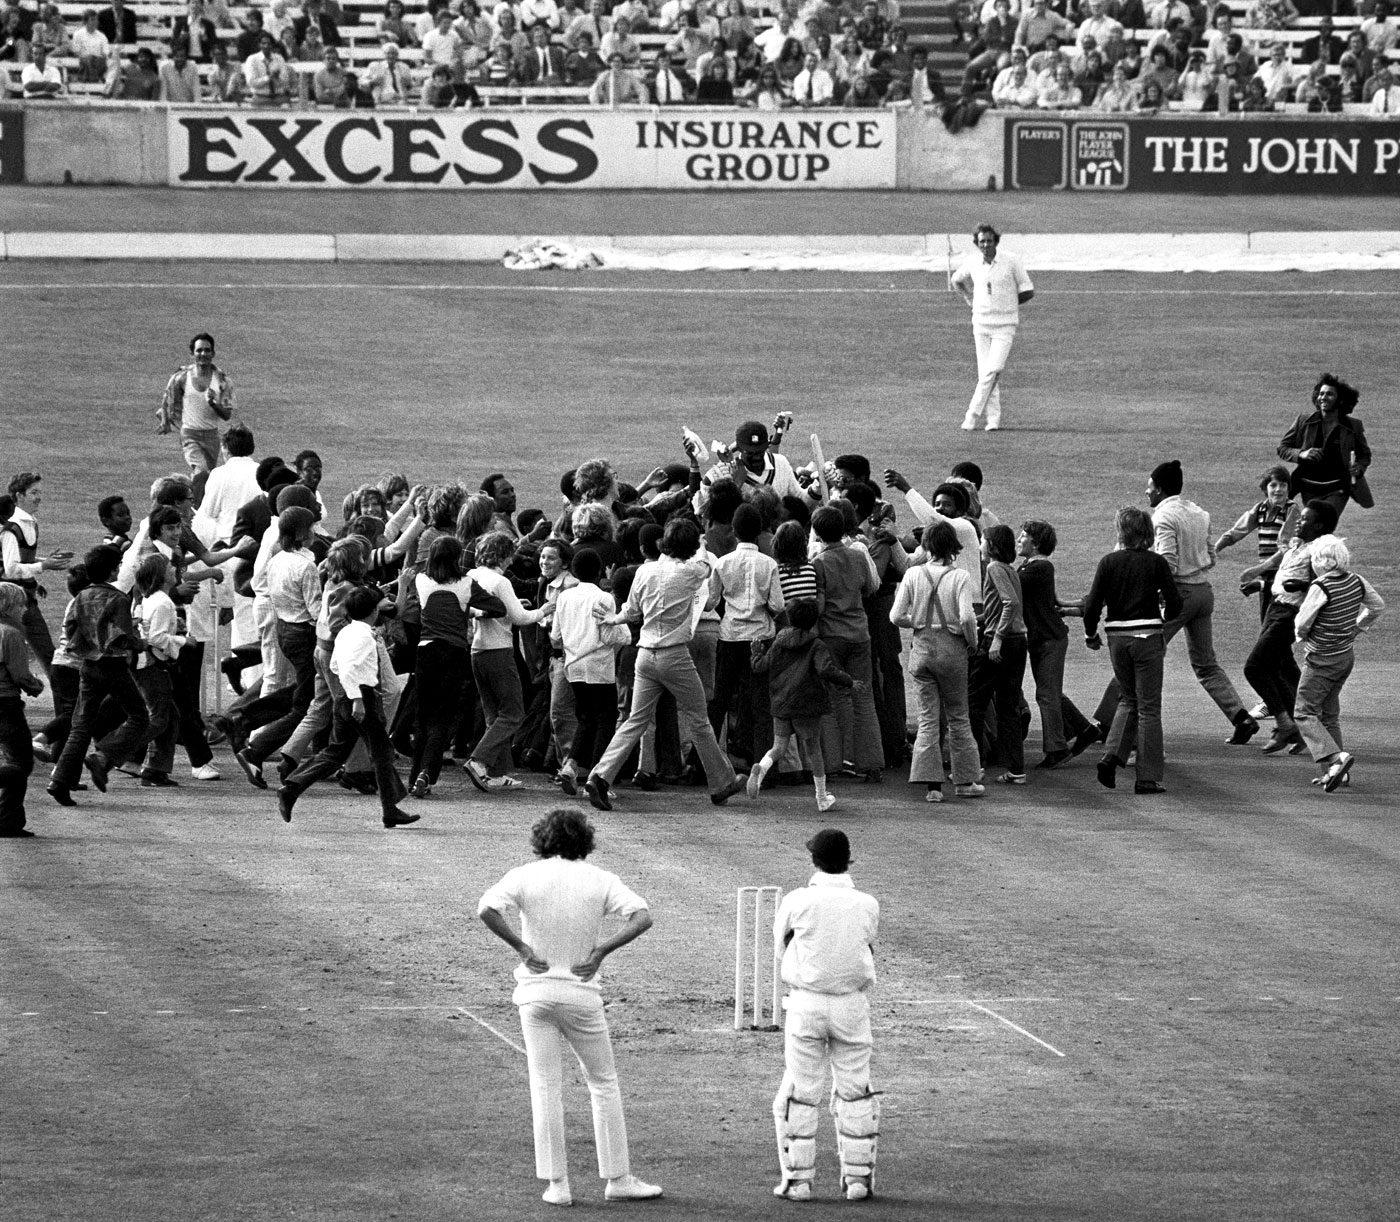 The English players can only watch as Clive Lloyd is engulfed by fans after his making a century at the Oval on the first day of the first Test in 1973